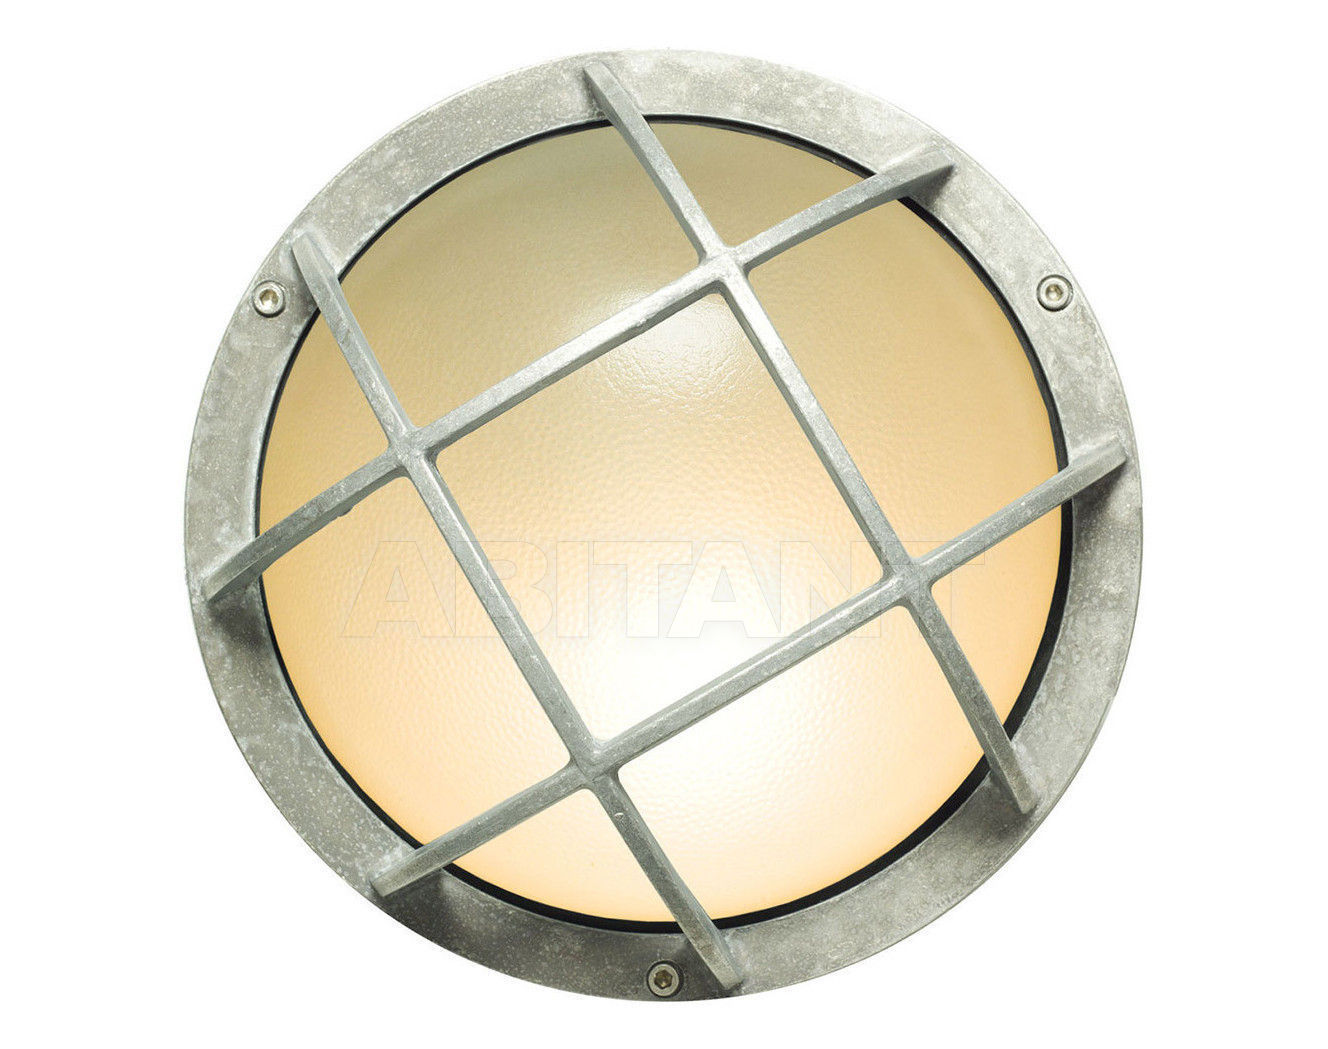 Купить Светильник Davey Lighting Bulkhead Lights 8138/AL/E27